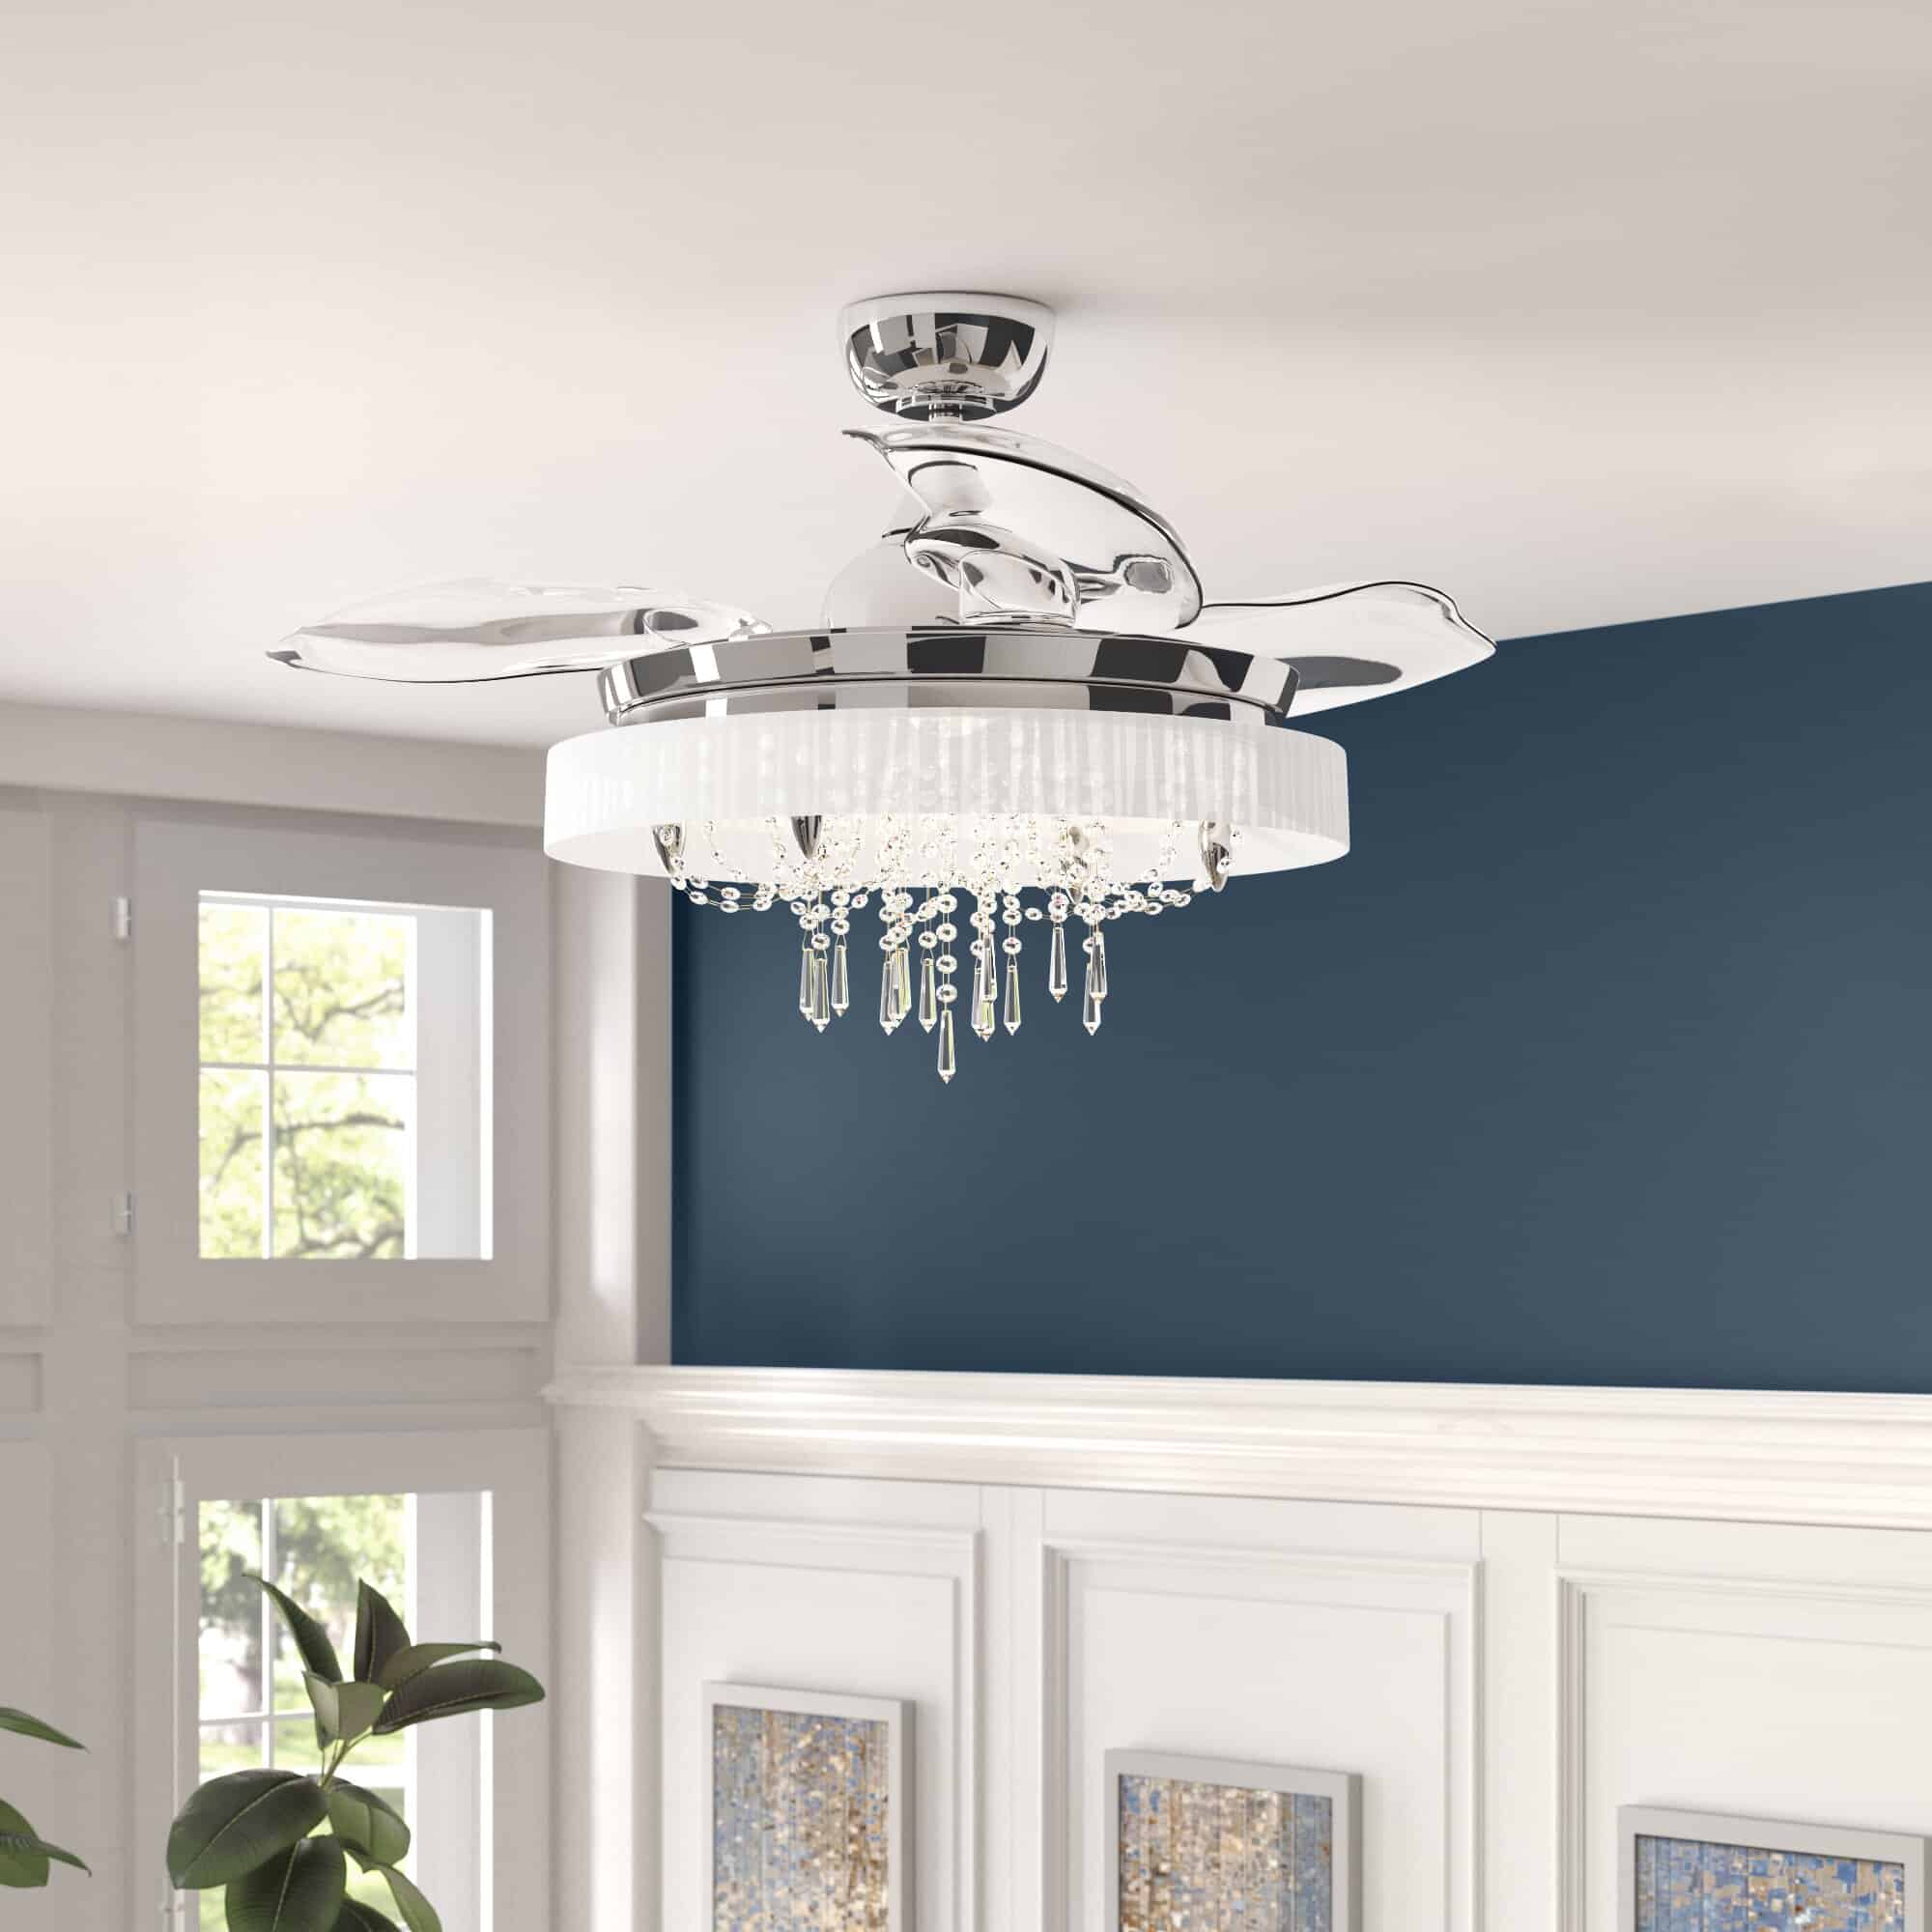 Blade+Ceiling+Fan+with+Remote+Control-42s3